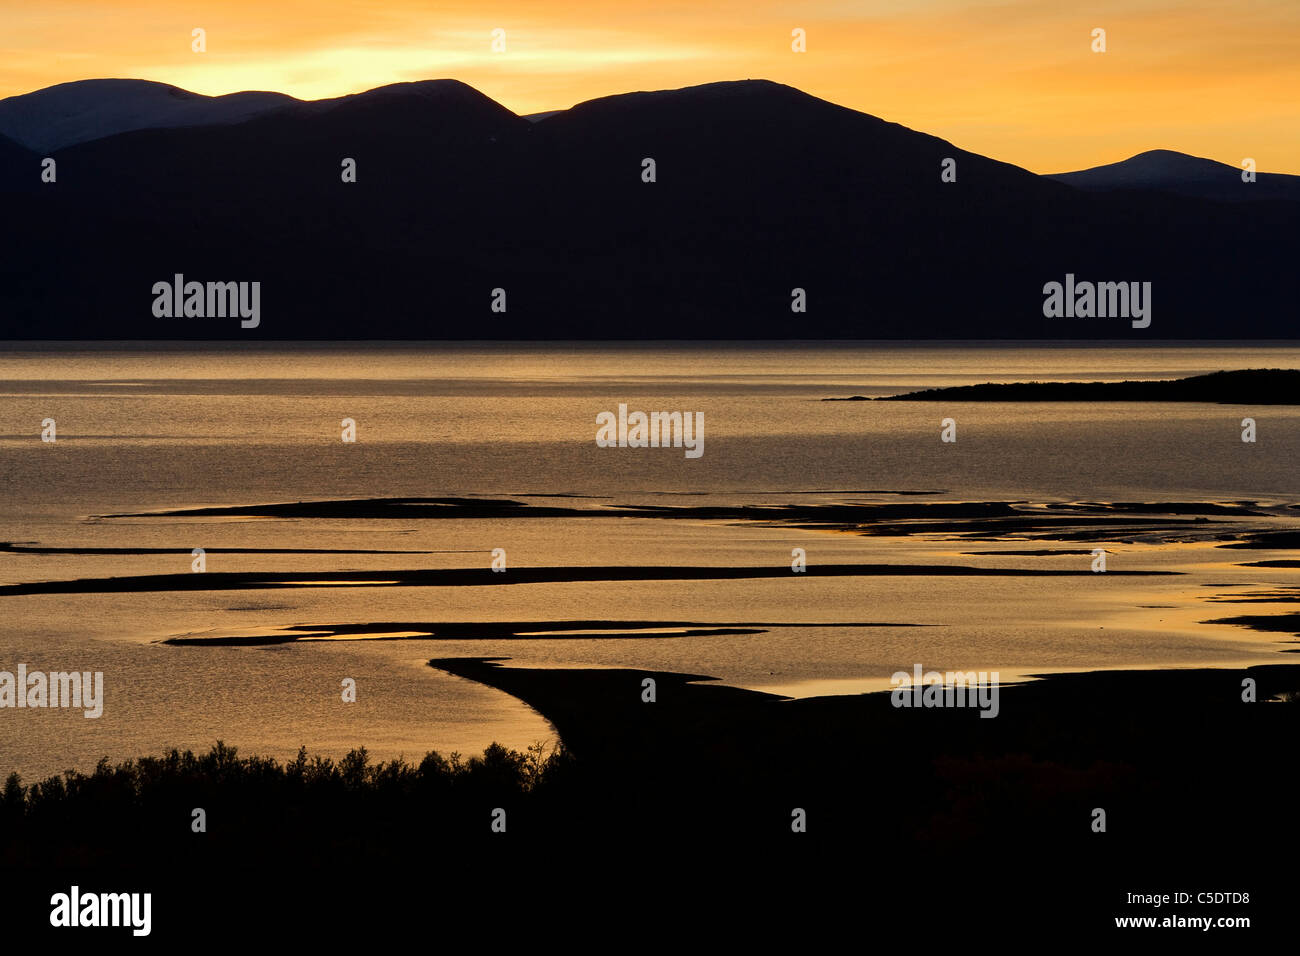 Beautiful view of silhouette mountains across the swamp at dusk - Stock Image